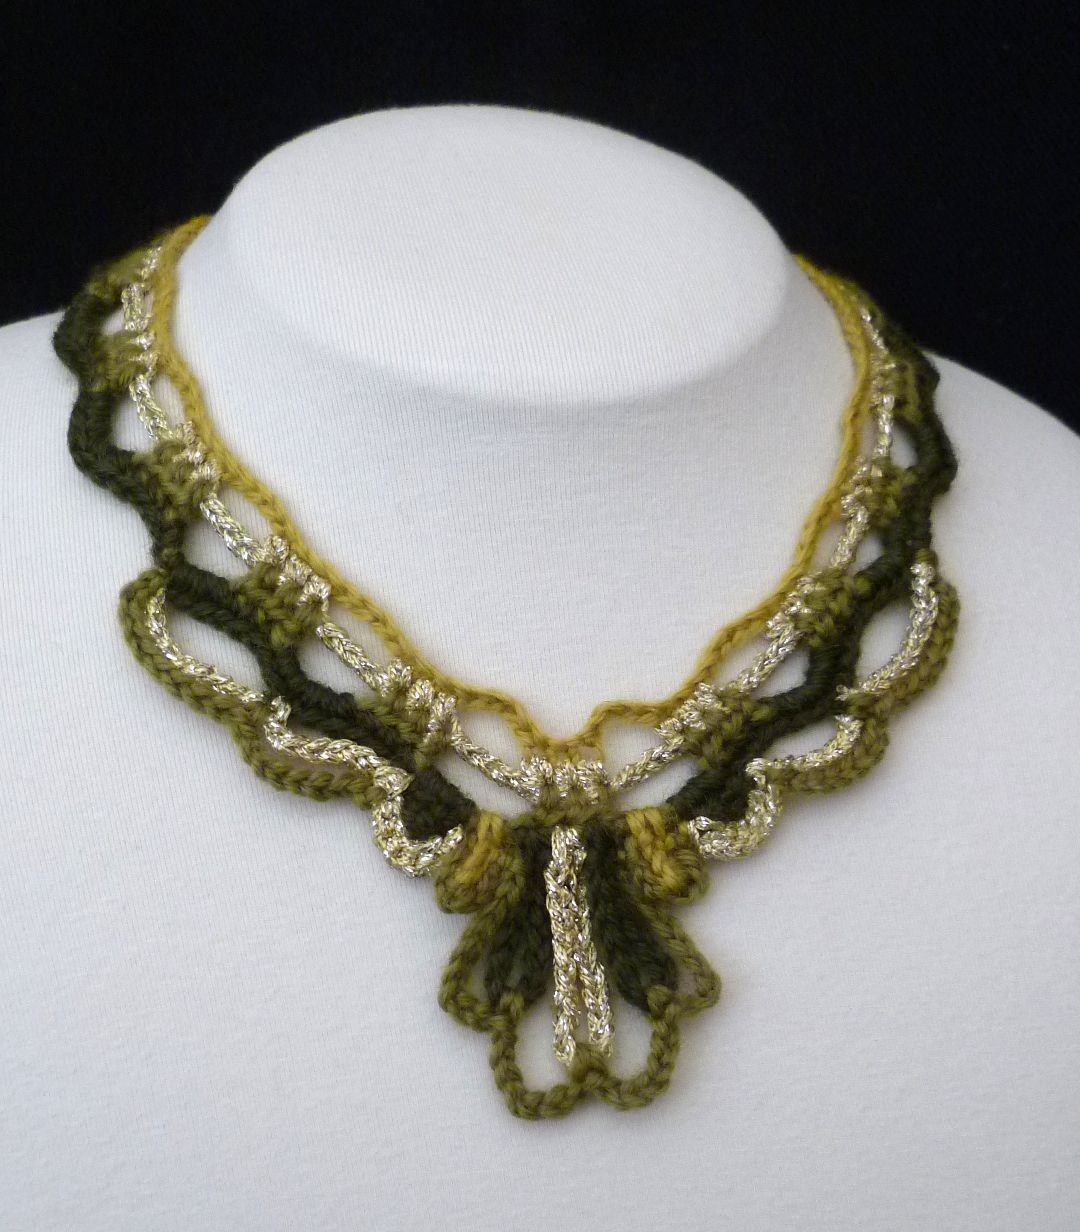 Stitch Story: The Crawford Crochet Necklace Pattern, Now in US Terms!